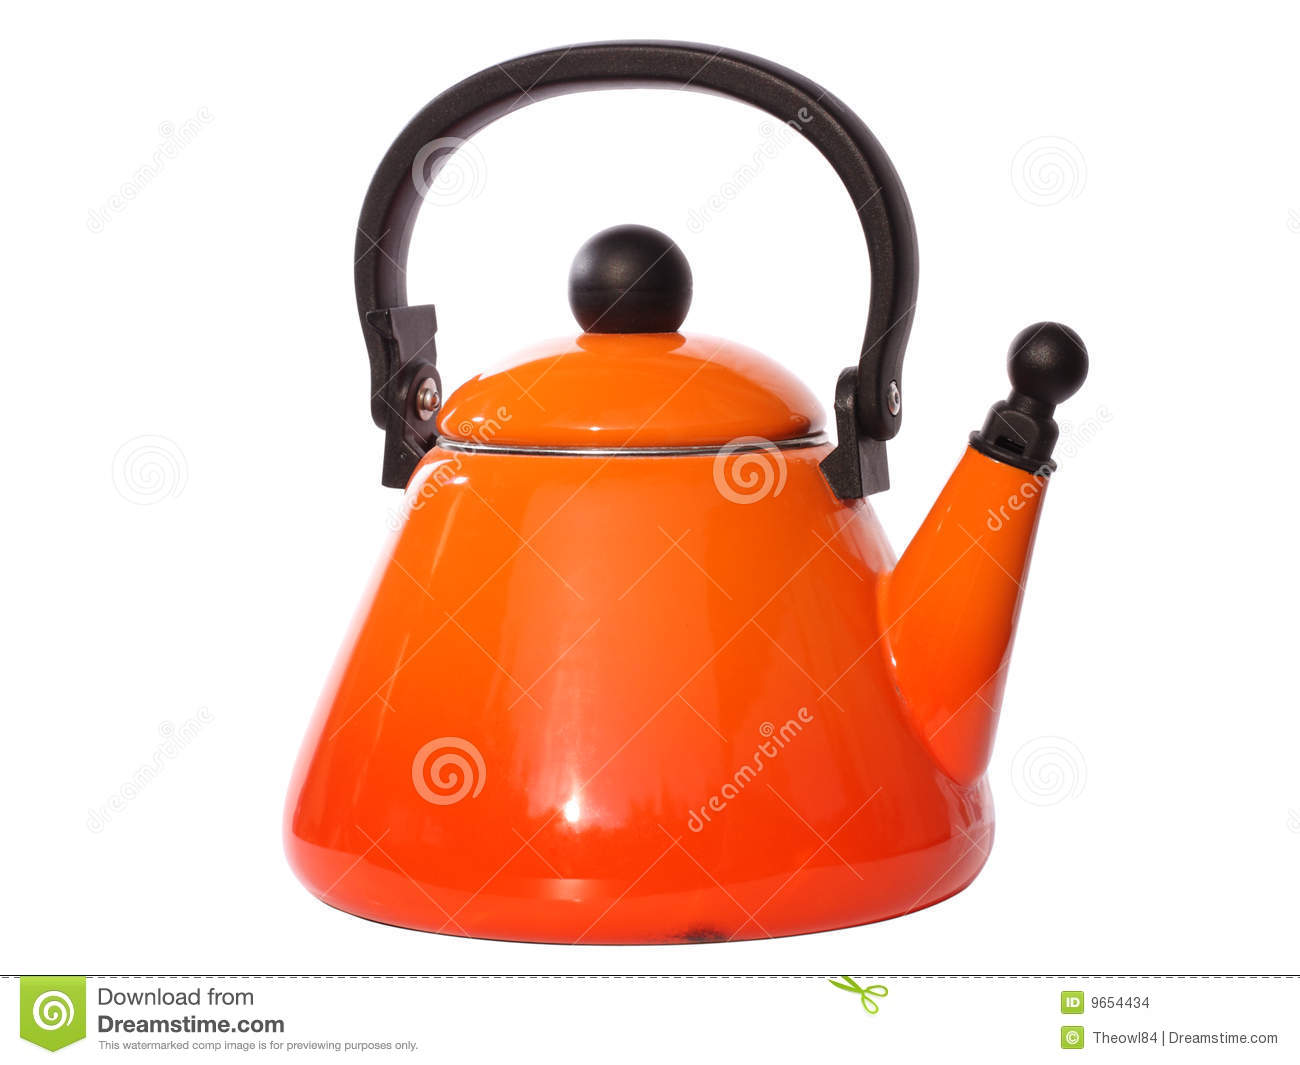 orange tea kettle stock images  image  - orange tea kettle